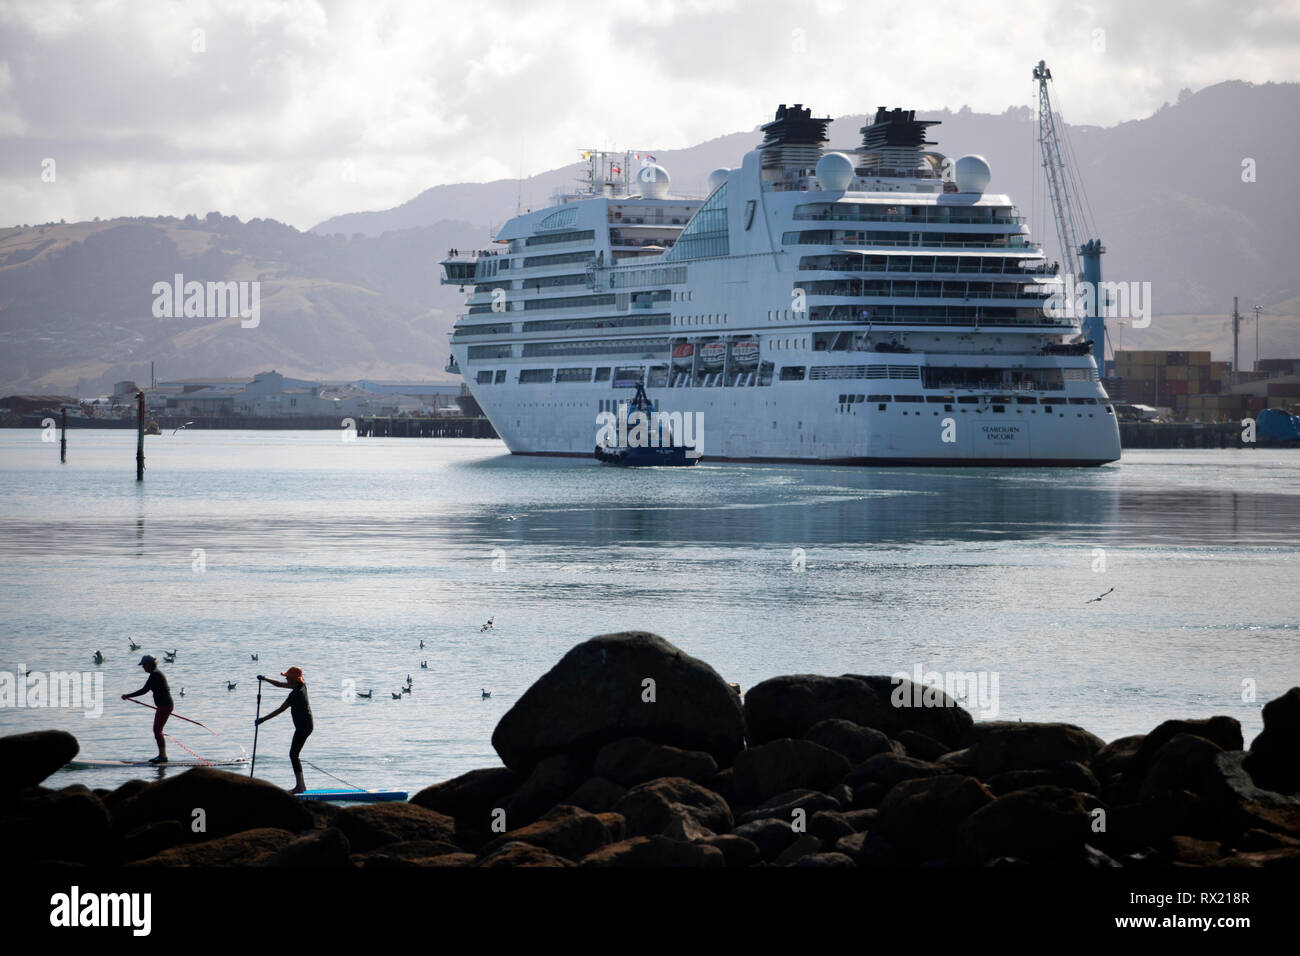 Picture by Tim Cuff - 25 January 2019 - Arrival of cruise ship Seabourn Encore into Port Nelson, New Zealand - Stock Image